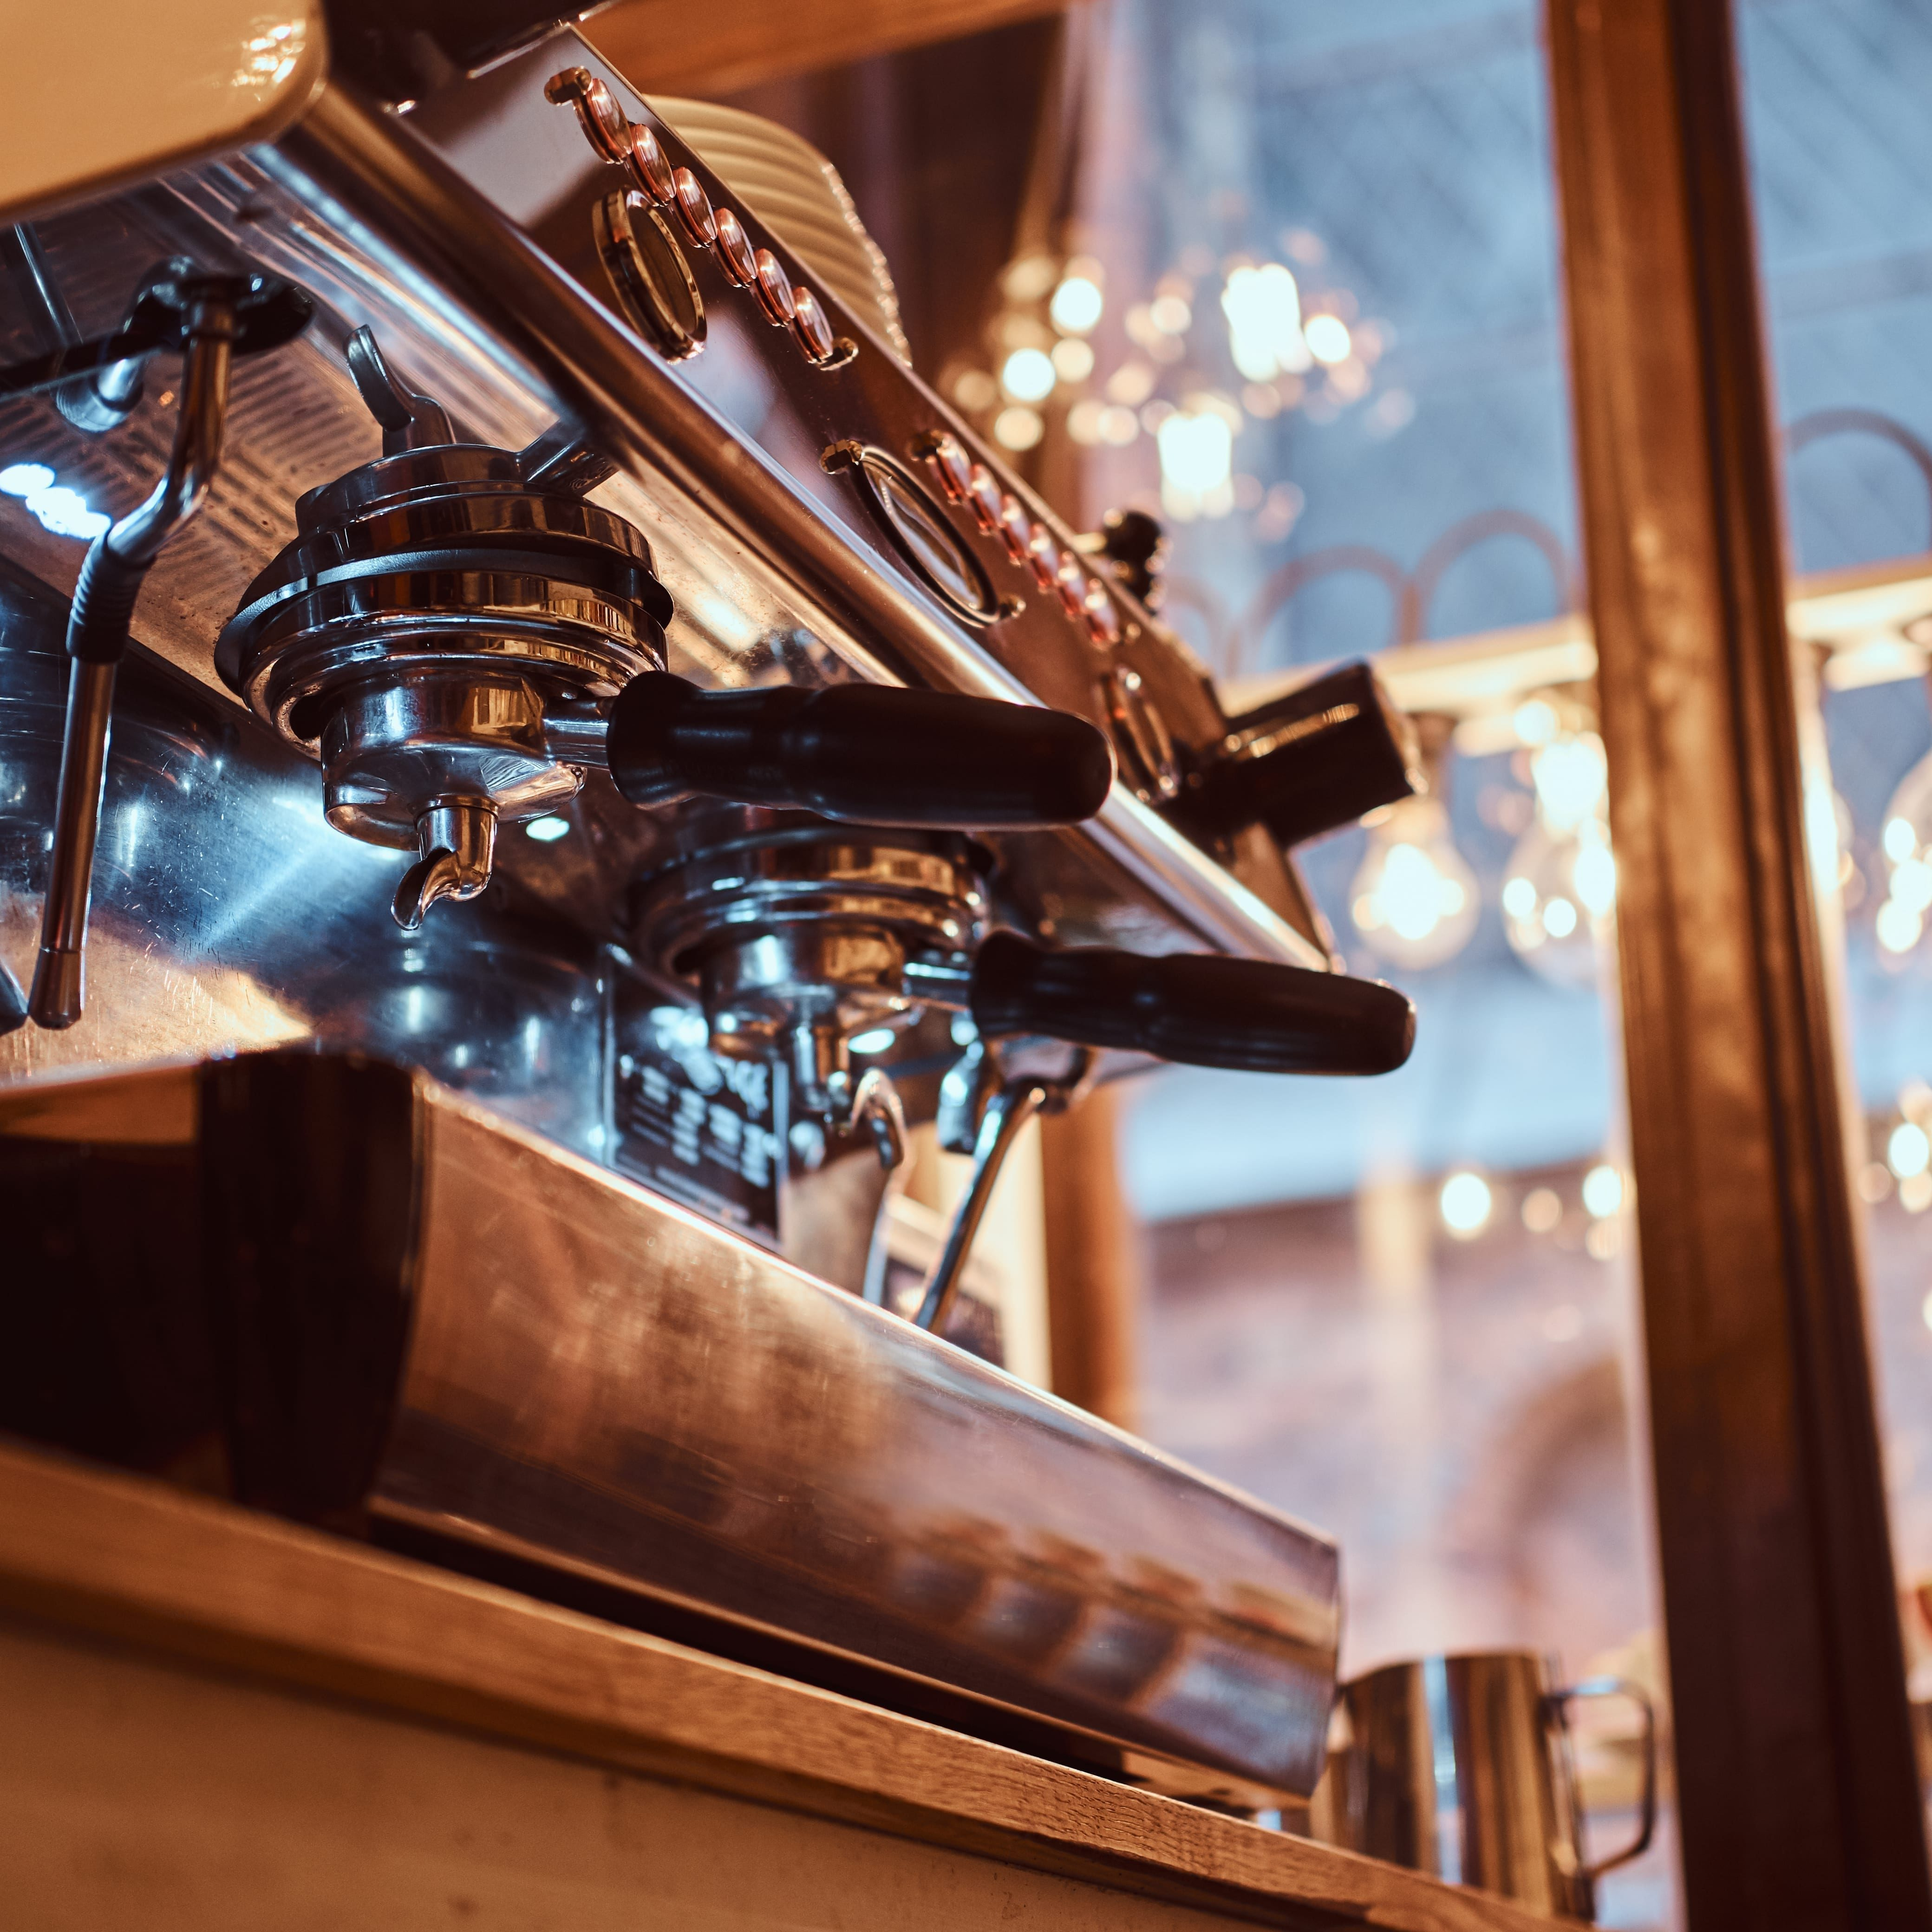 Close-up of the coffee machine in the restaurant or cafe shop